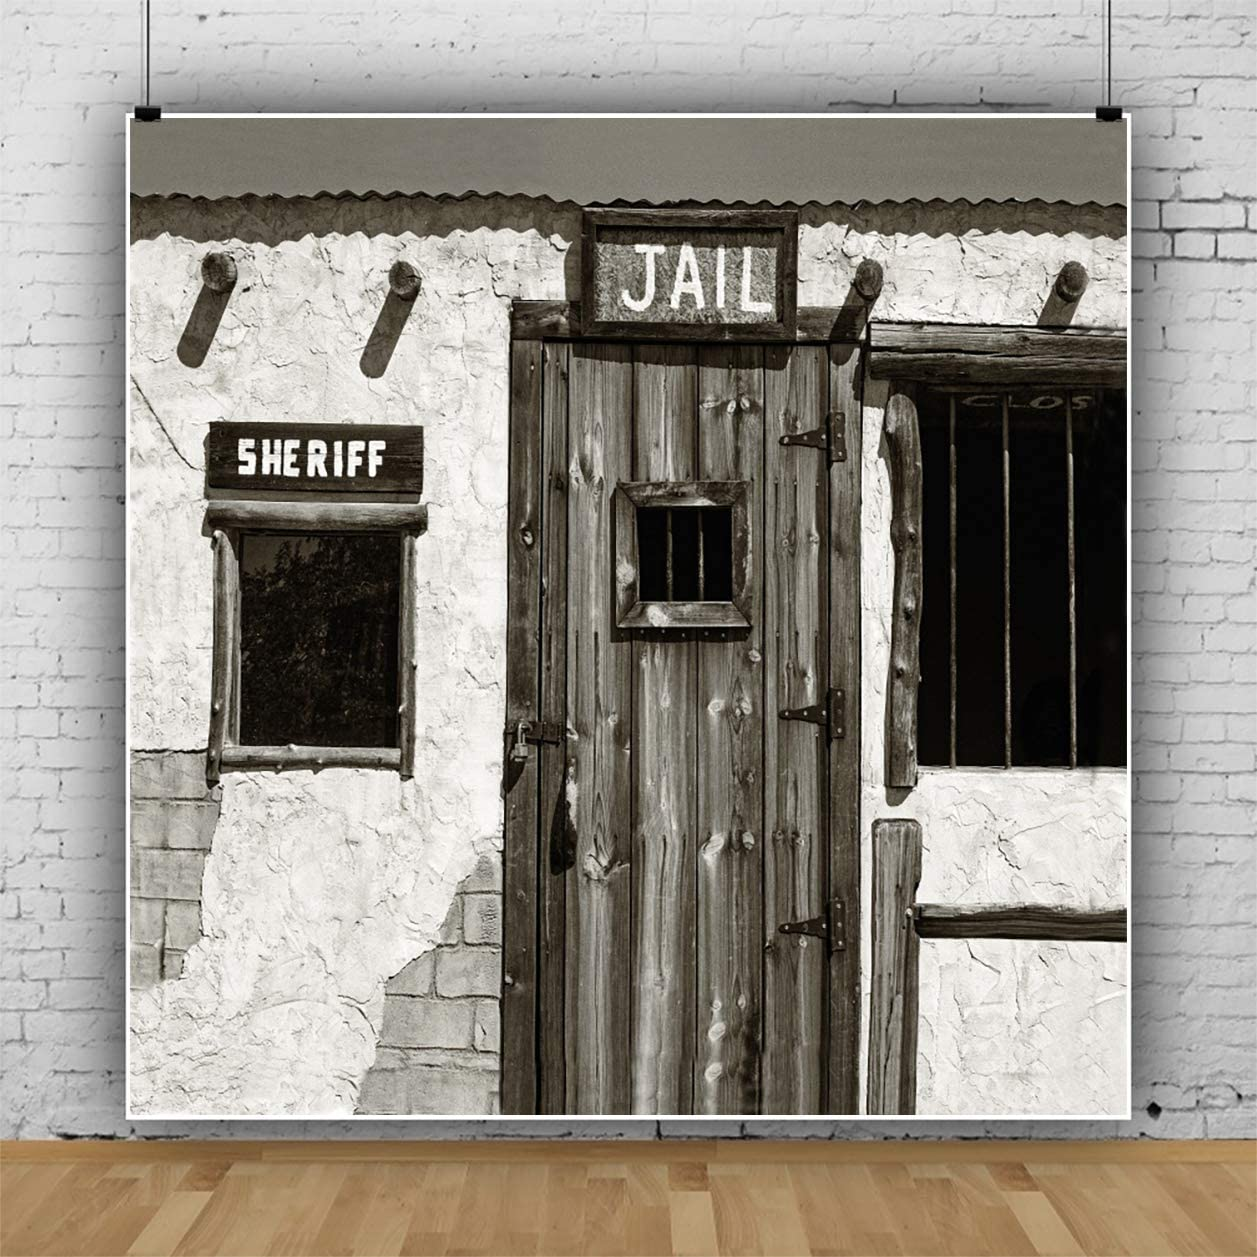 YEELE Western Backdrop Jail and Sheriffs Office in an Old West Ghost Town Photography Background 9x9ft Wild West Events Party Decoration Photo Booth Banner Photoshoot Props Digital Wallpaper